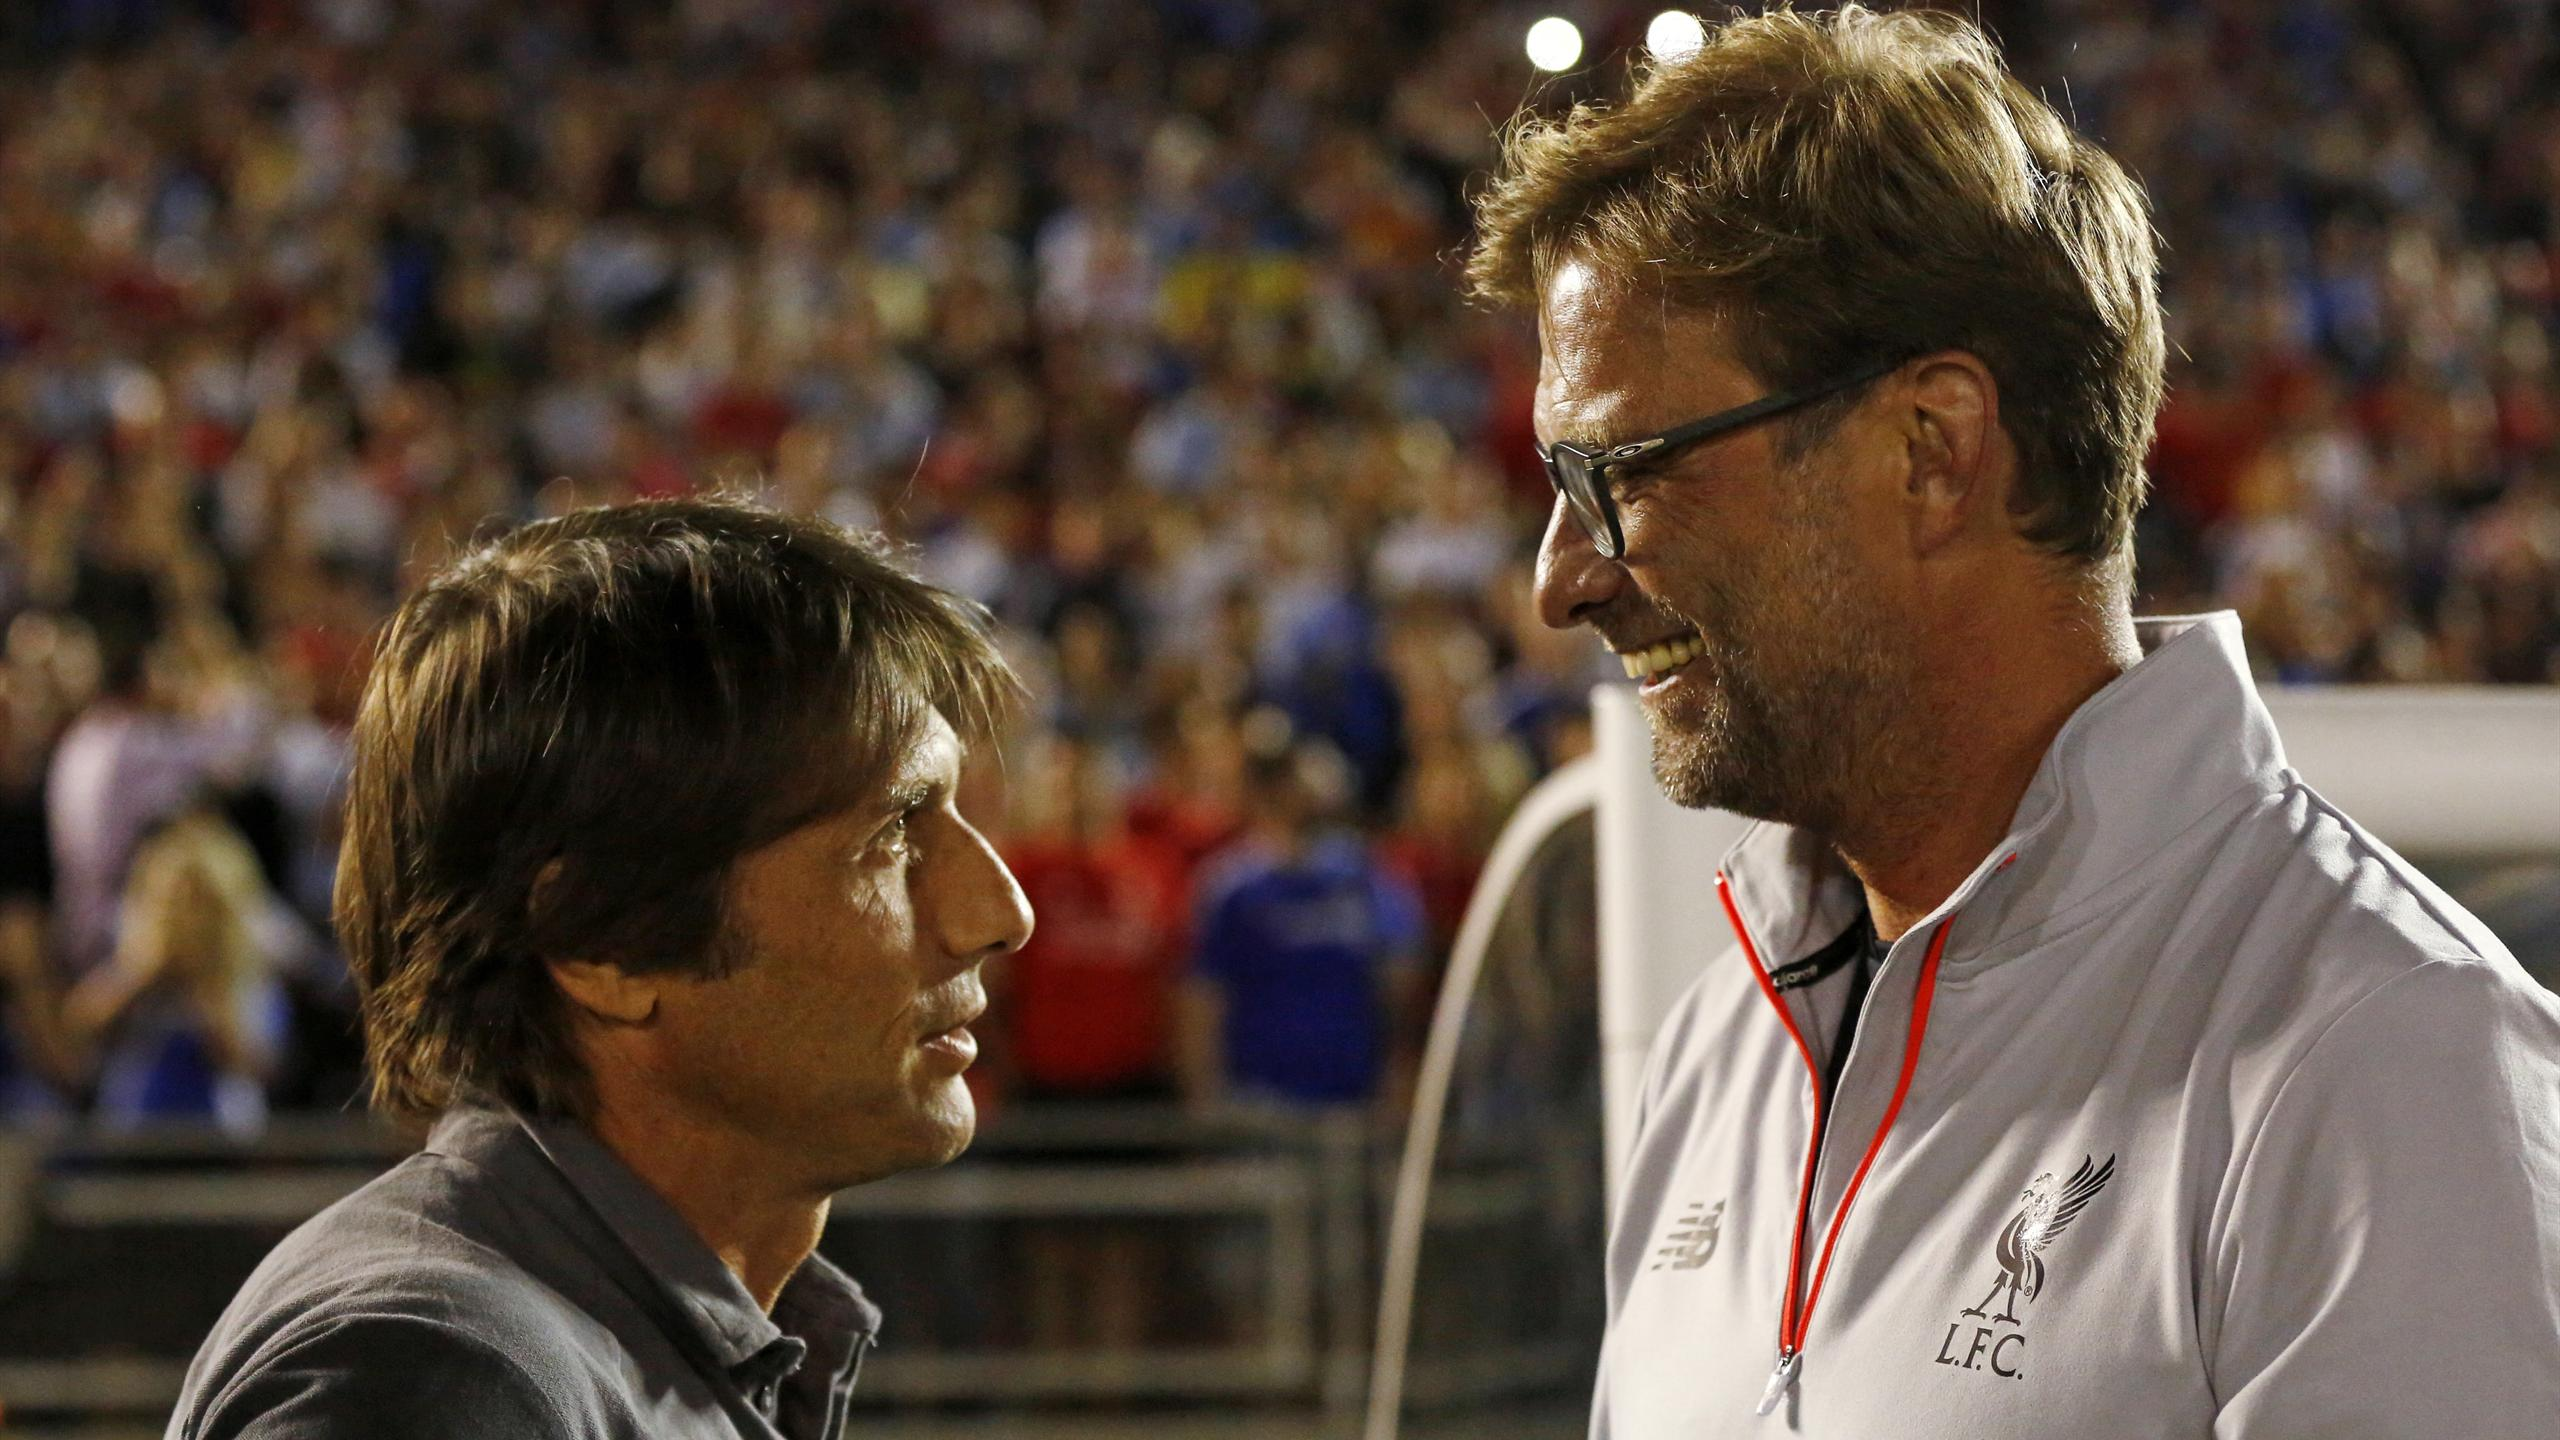 Chelsea's manager Antonio Conte with Liverpool's manager Juergen Klopp.